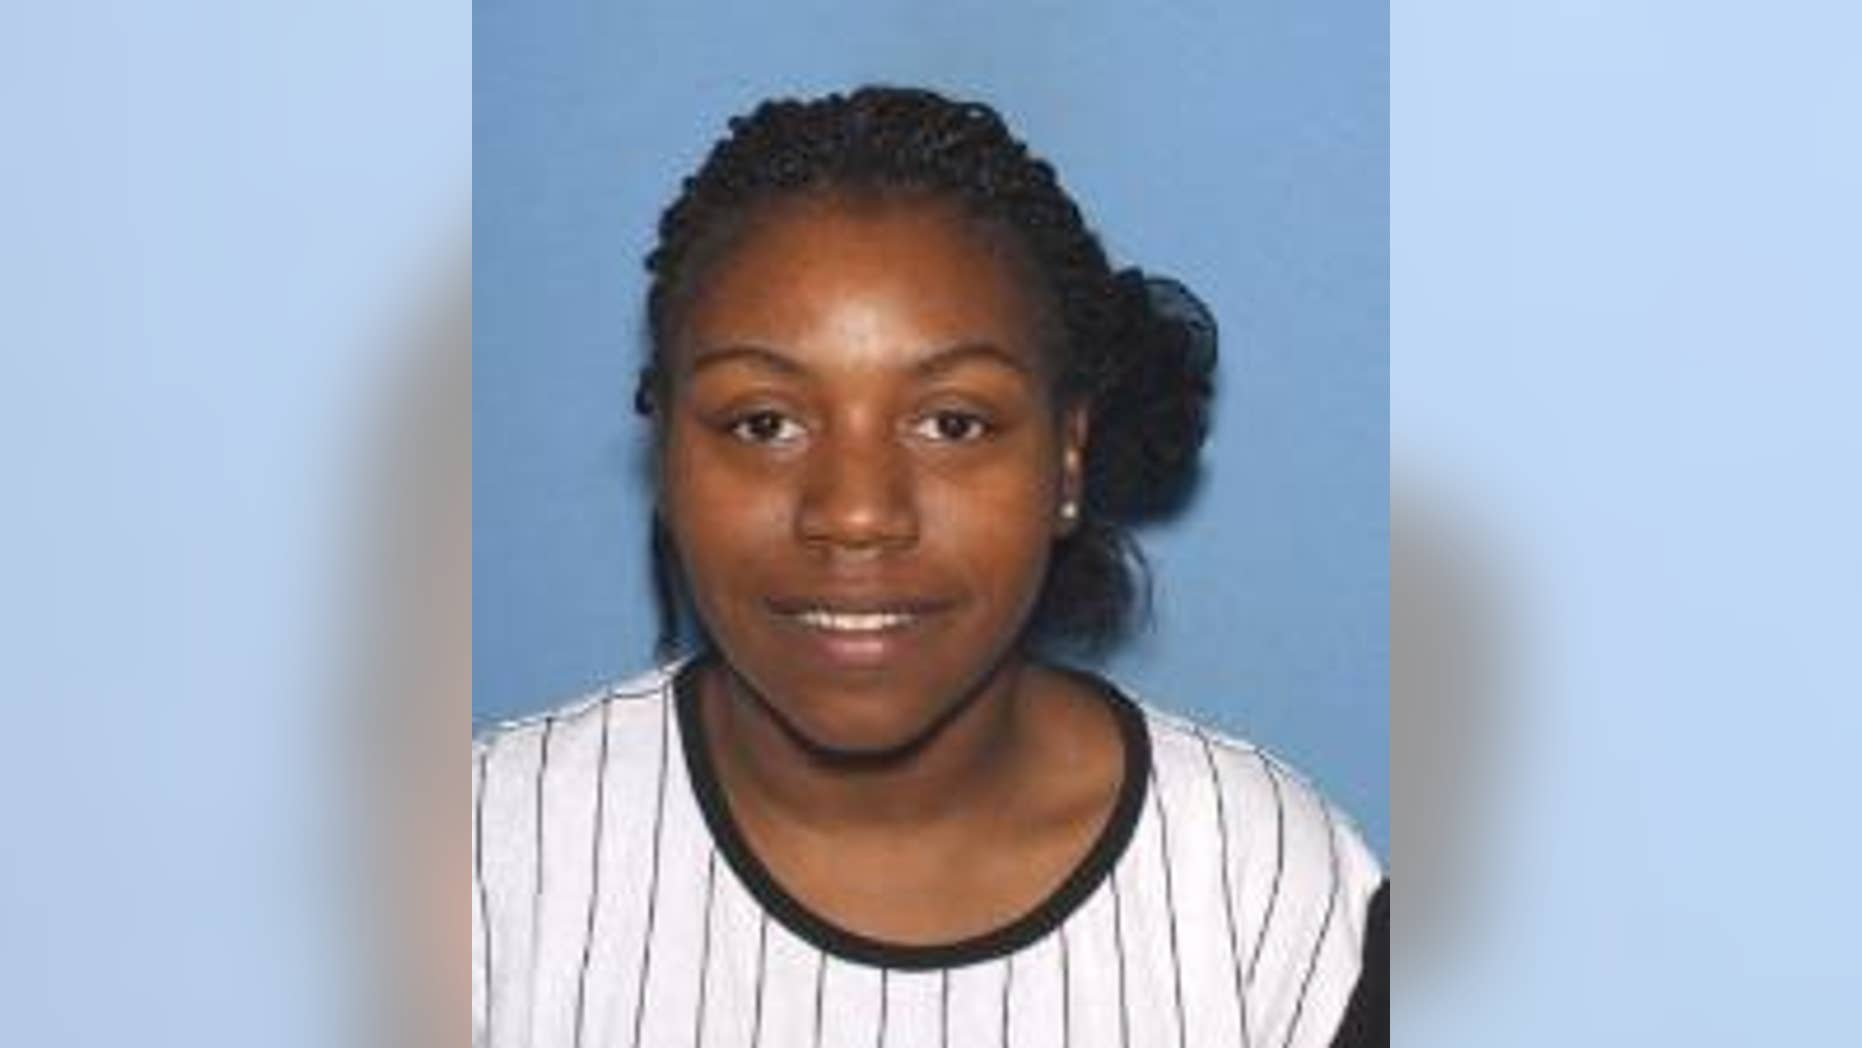 Keysheonna Reed, 24, was arrested Thursday in connection with the deaths of twins found in a suitcase in February.